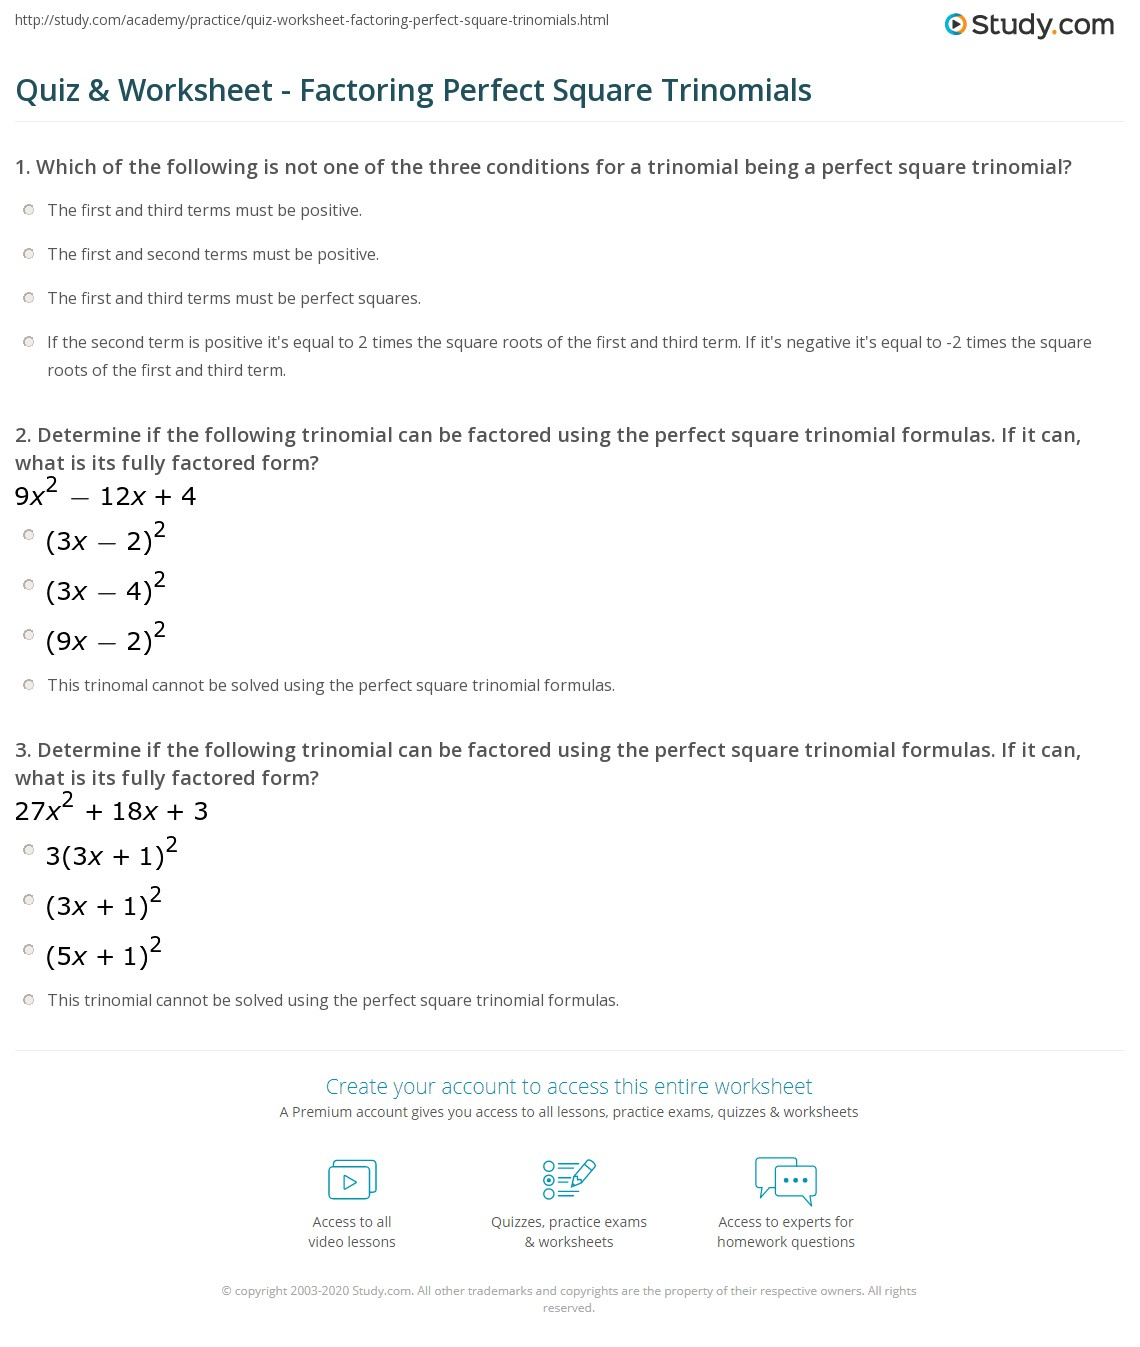 Quiz & Worksheet - Factoring Perfect Square Trinomials | Study.com